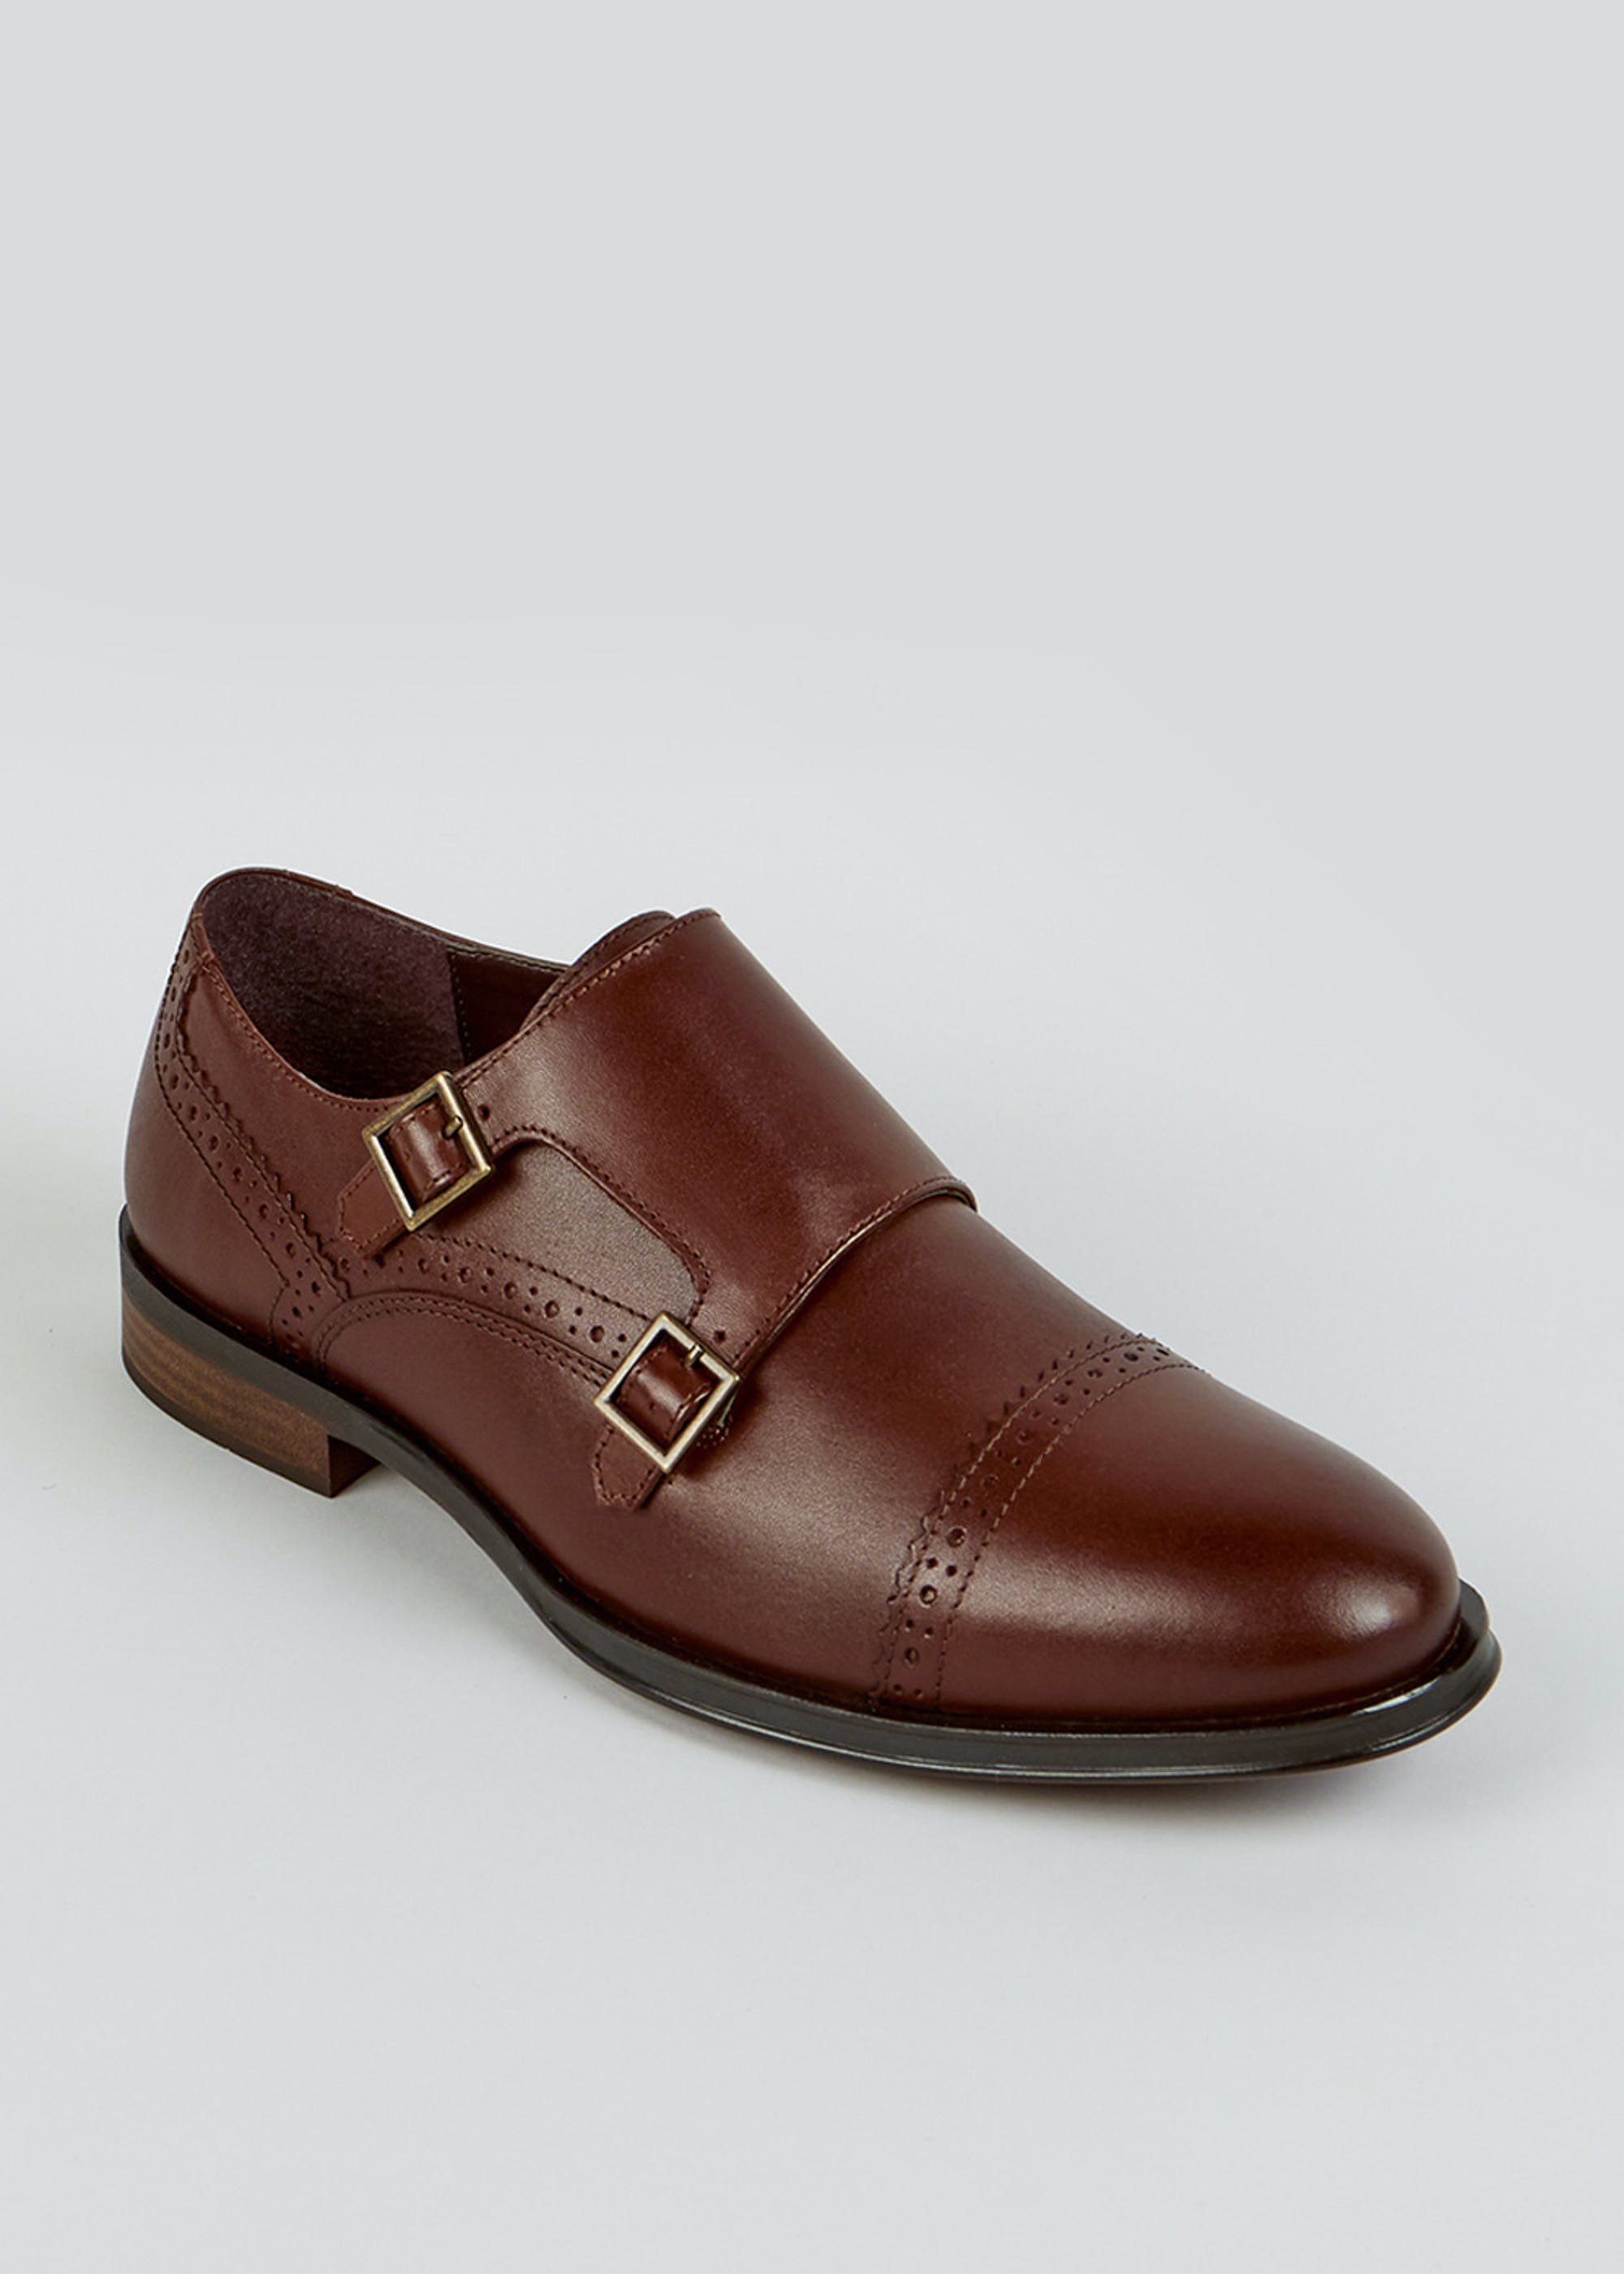 Brown Leather Monk Shoes Brown AHyfjL